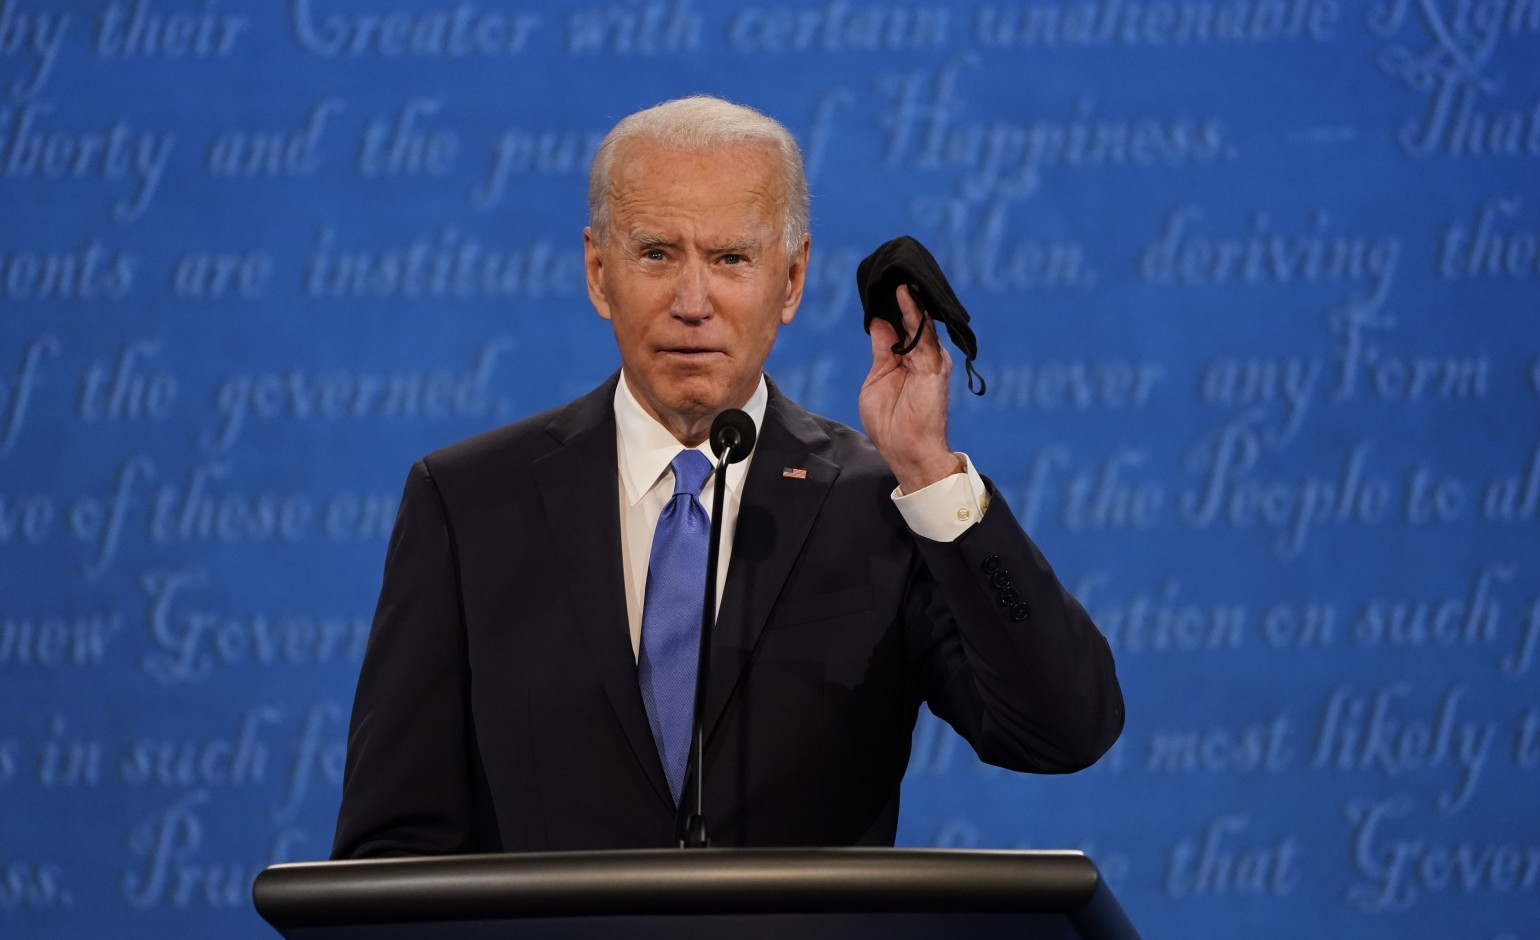 Joe Biden lied like